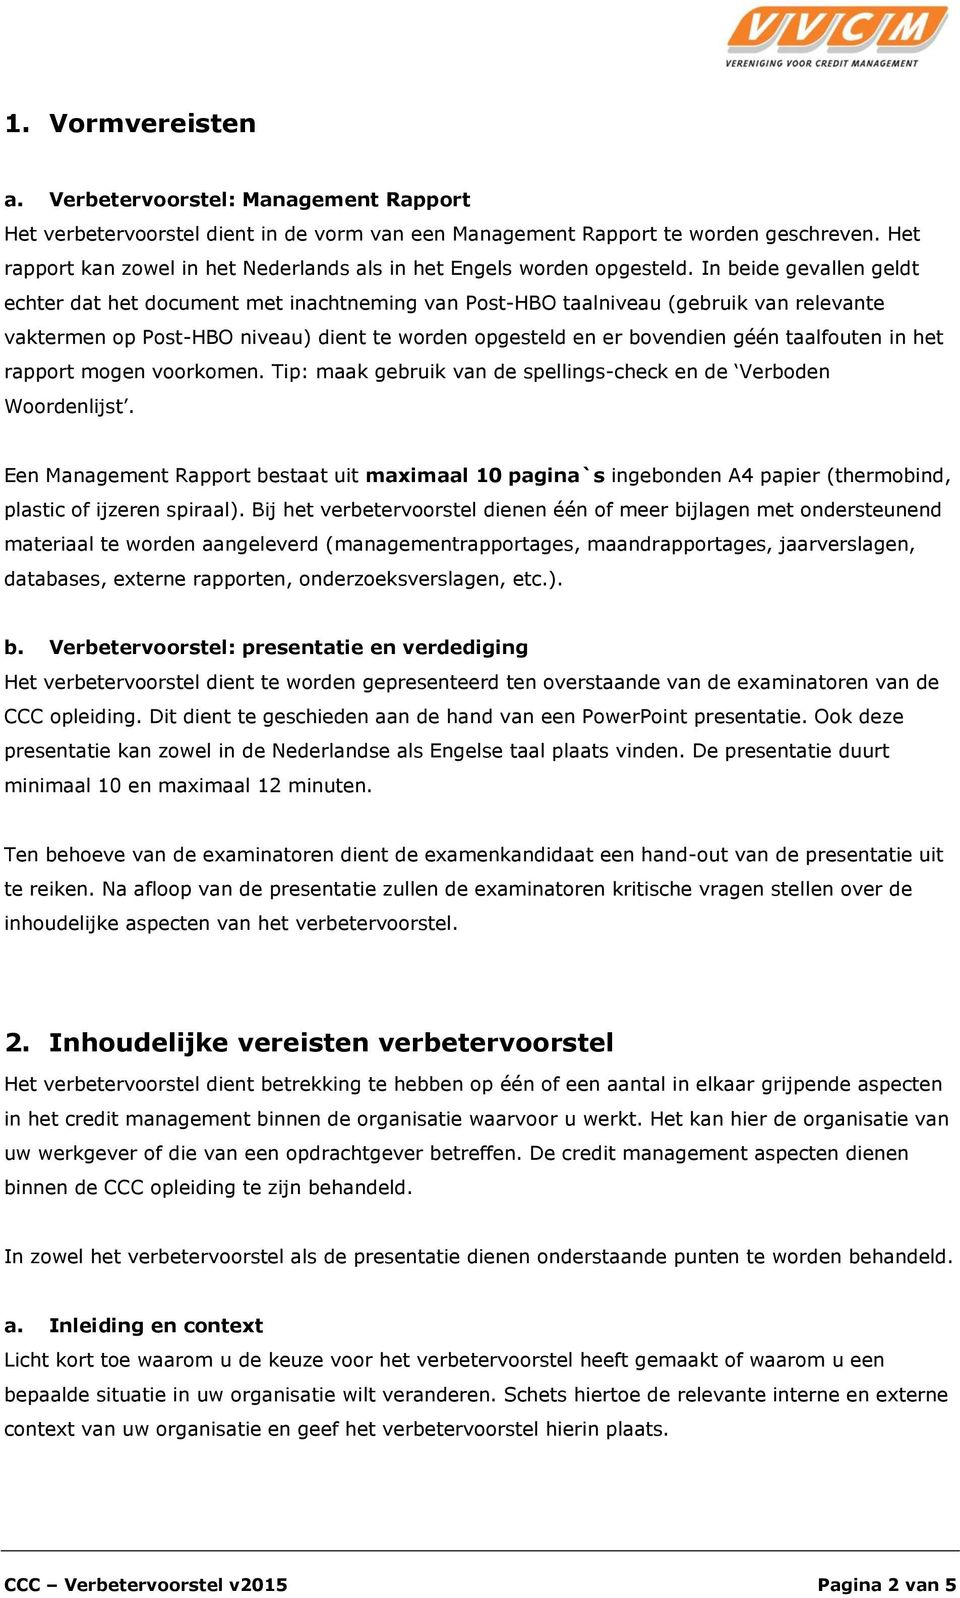 opdracht hbo leergang human resources